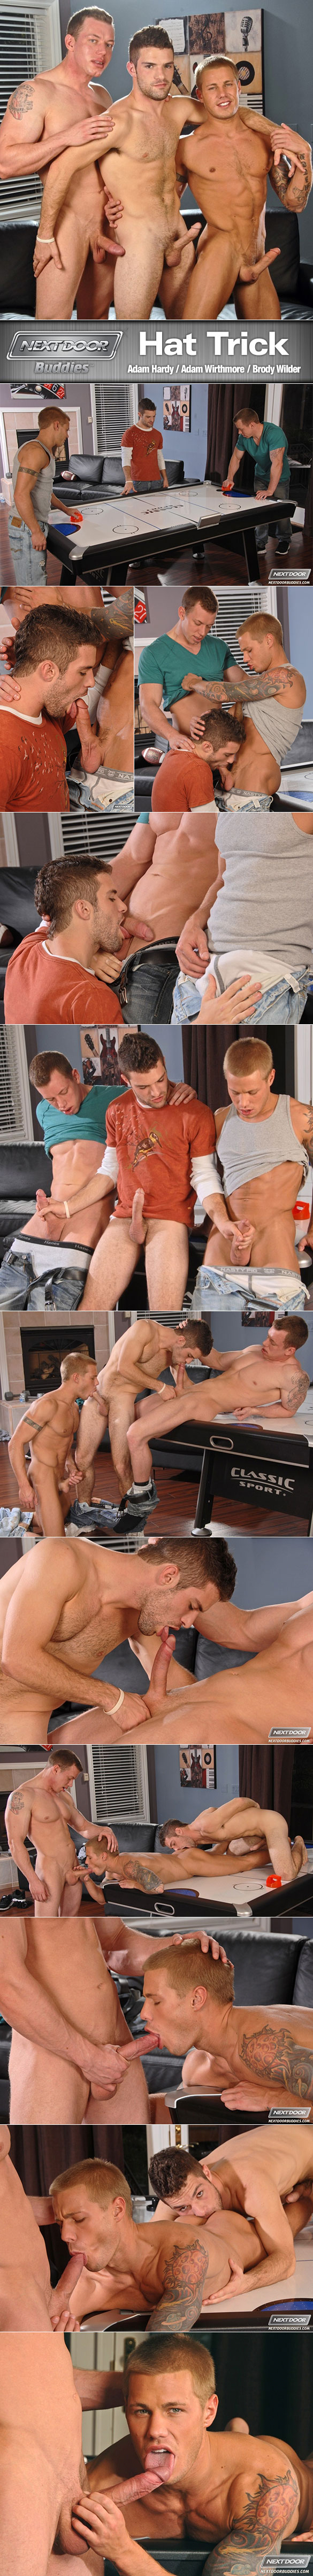 "NextDoorBuddies: Adam Wirthmore, Brody Wilder and Adam Hardy fuck each other in ""Hat Trick"""